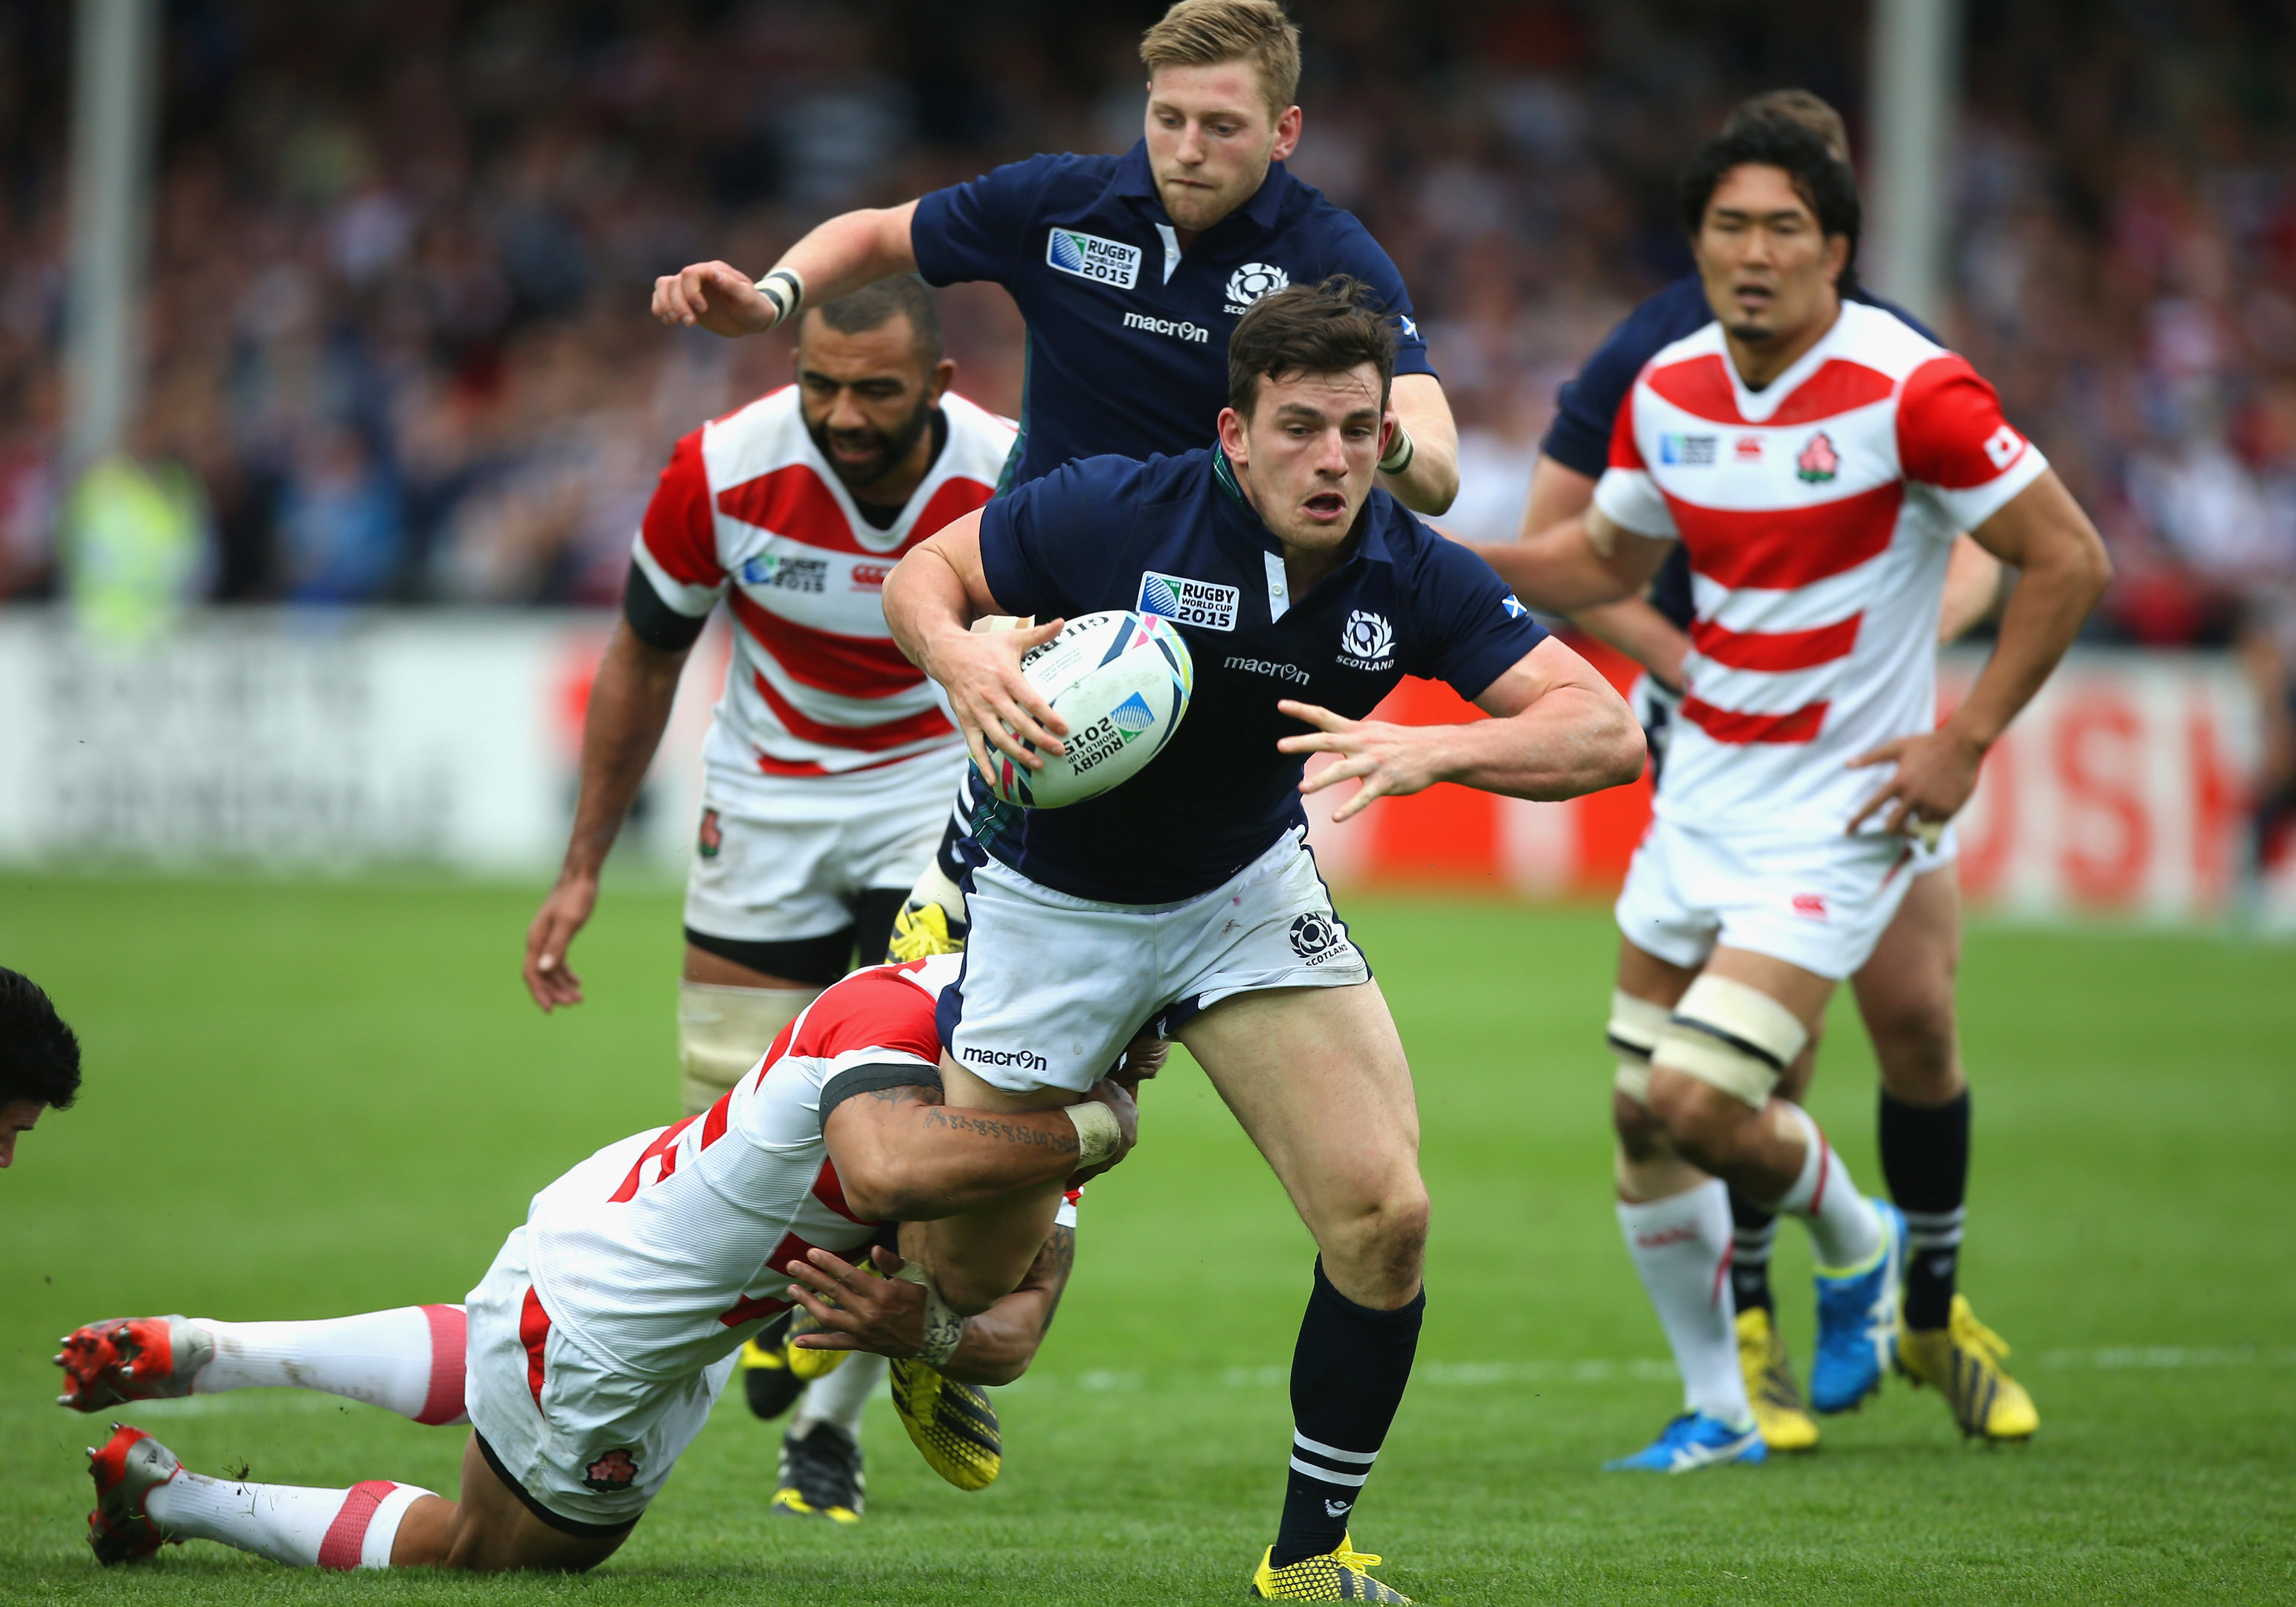 Matt Scott is back in the Scotland squad having been left out since the Rugby World Cup.